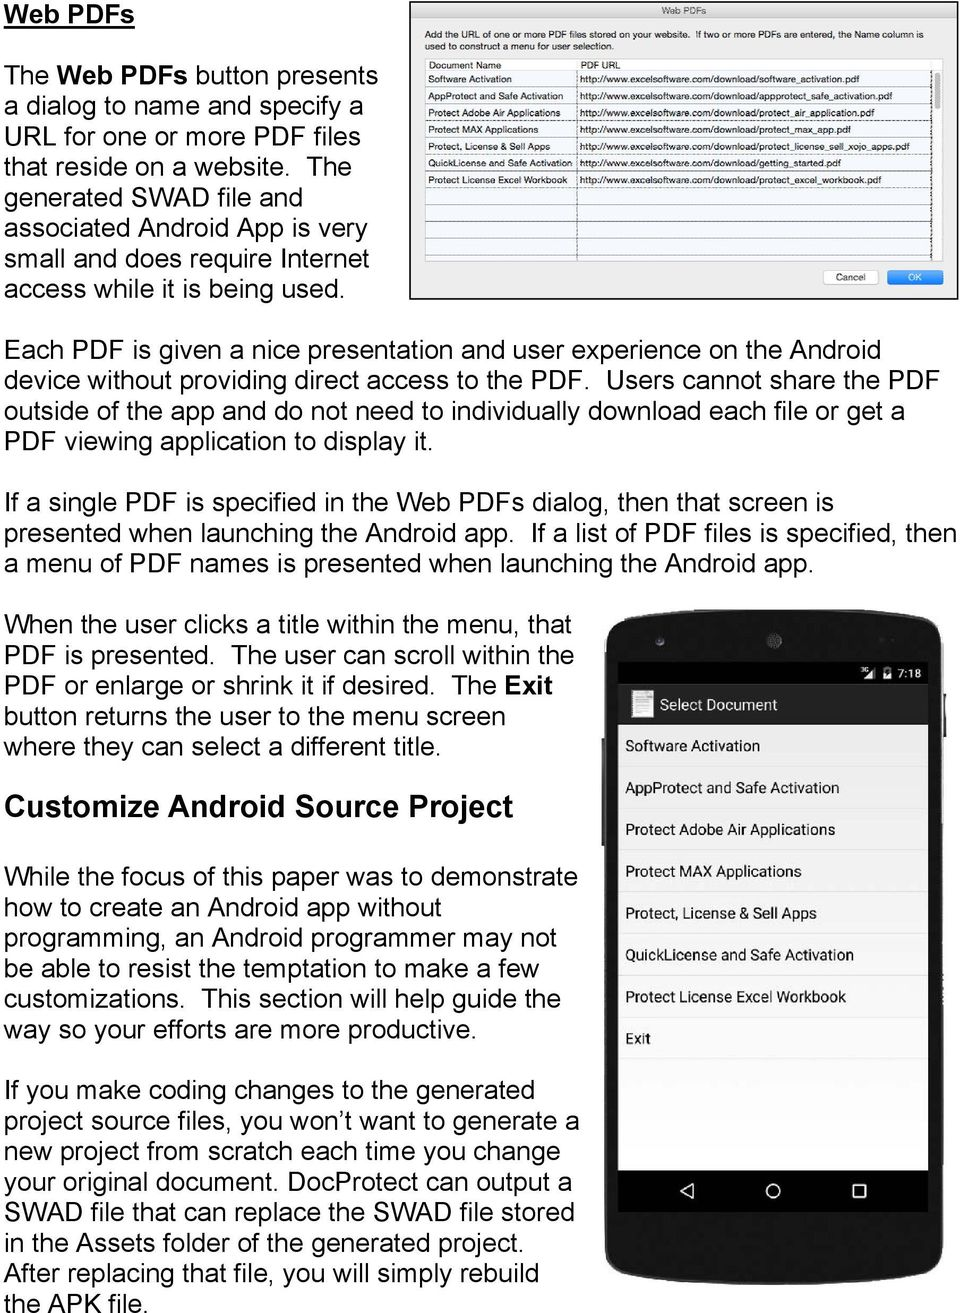 Each PDF is given a nice presentation and user experience on the Android device without providing direct access to the PDF.